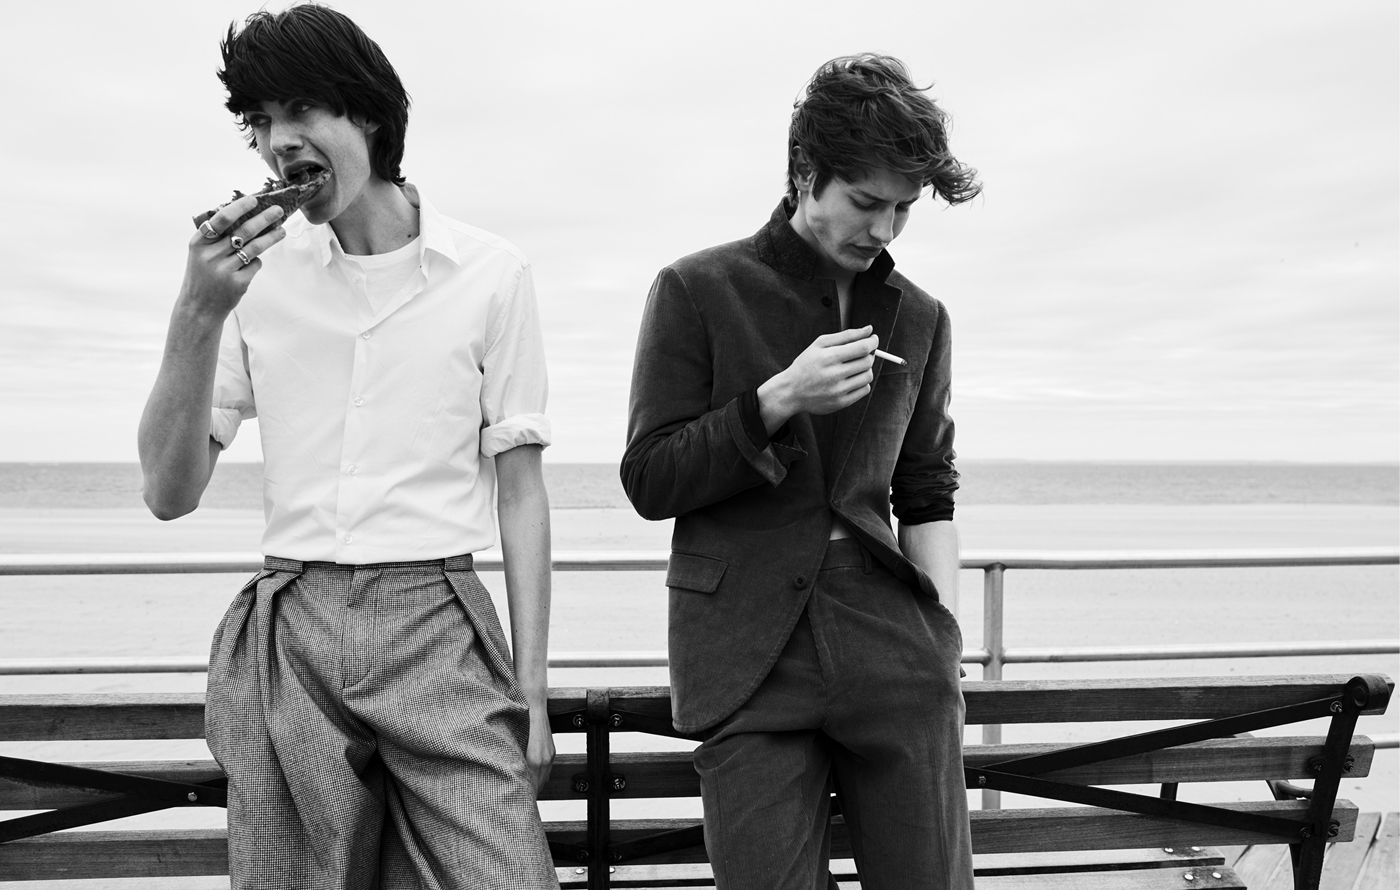 From left: Payne wears shirt and t-shirt by Gap. Trousers by Giorgio Armani. All jewelry, model's own. Nathan Morgan wears all clothing by Childs.